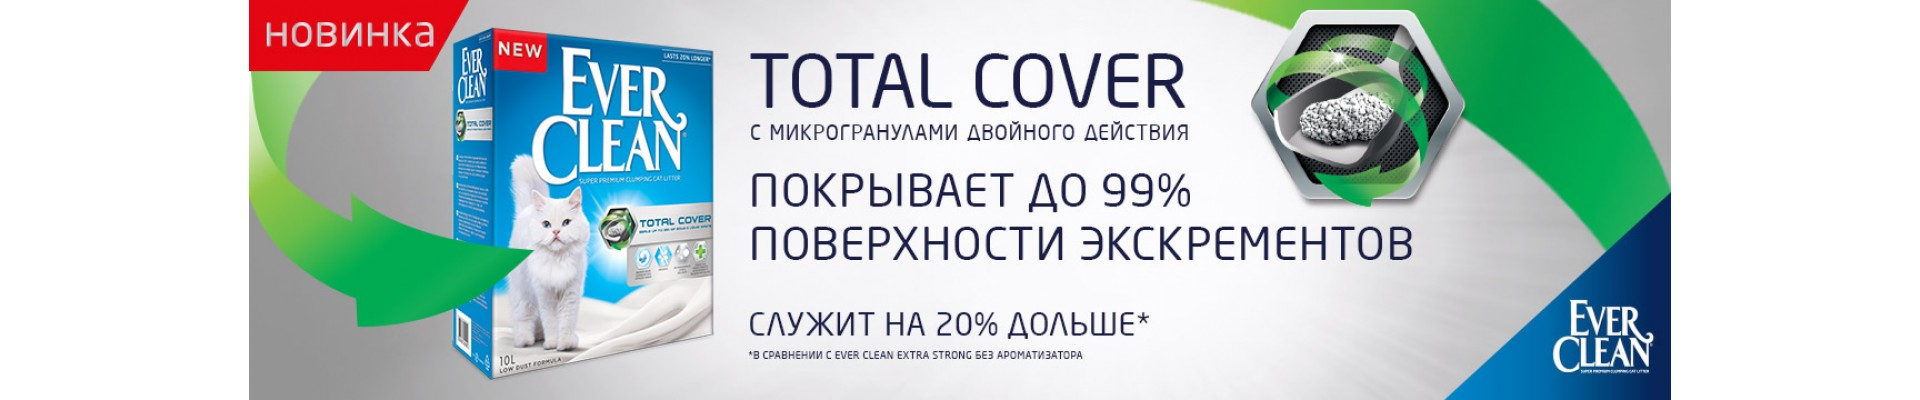 total cover